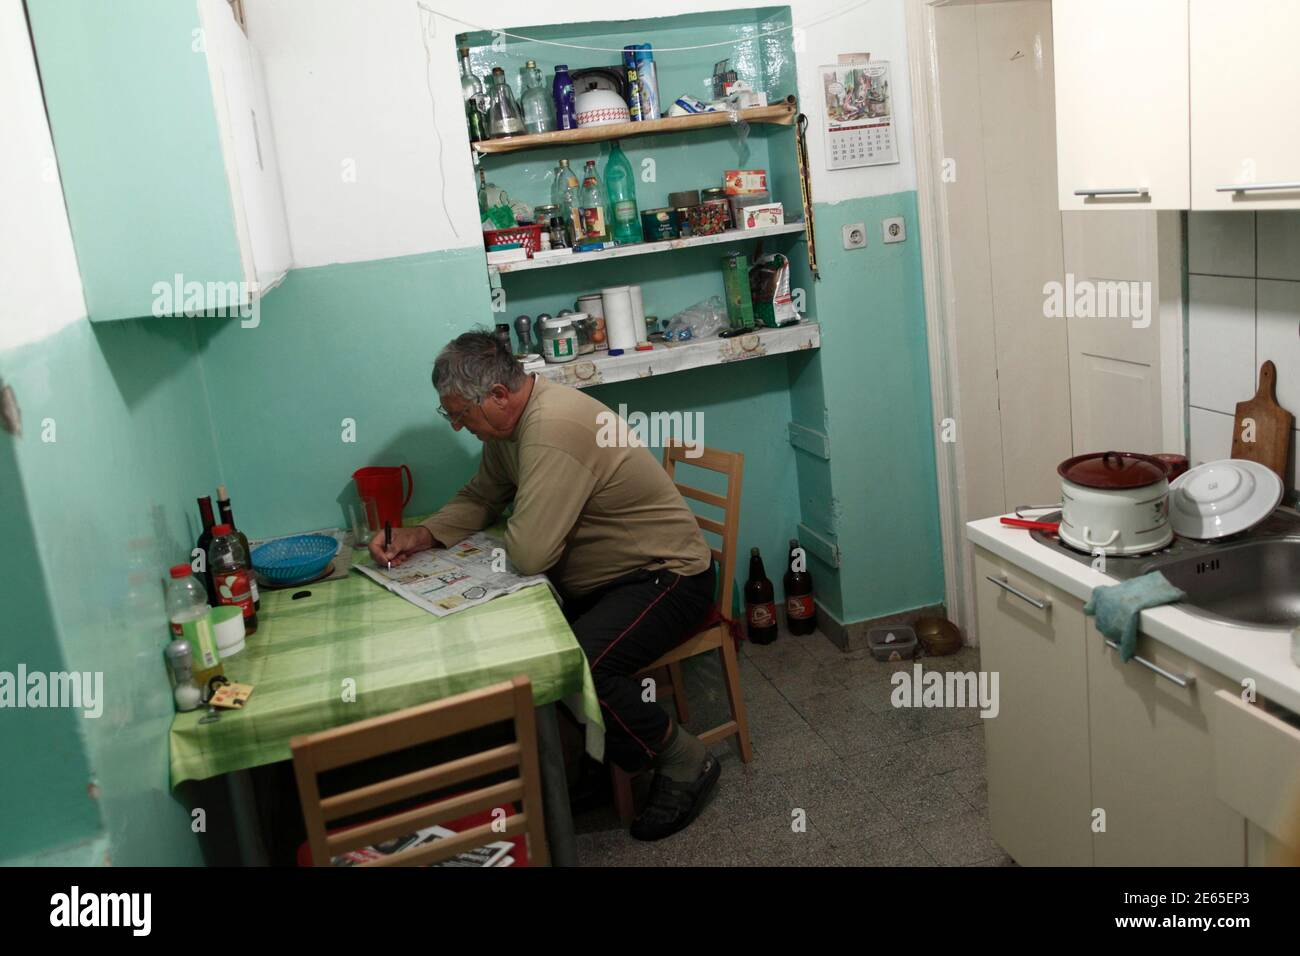 1990s Kitchen High Resolution Stock Photography And Images Alamy